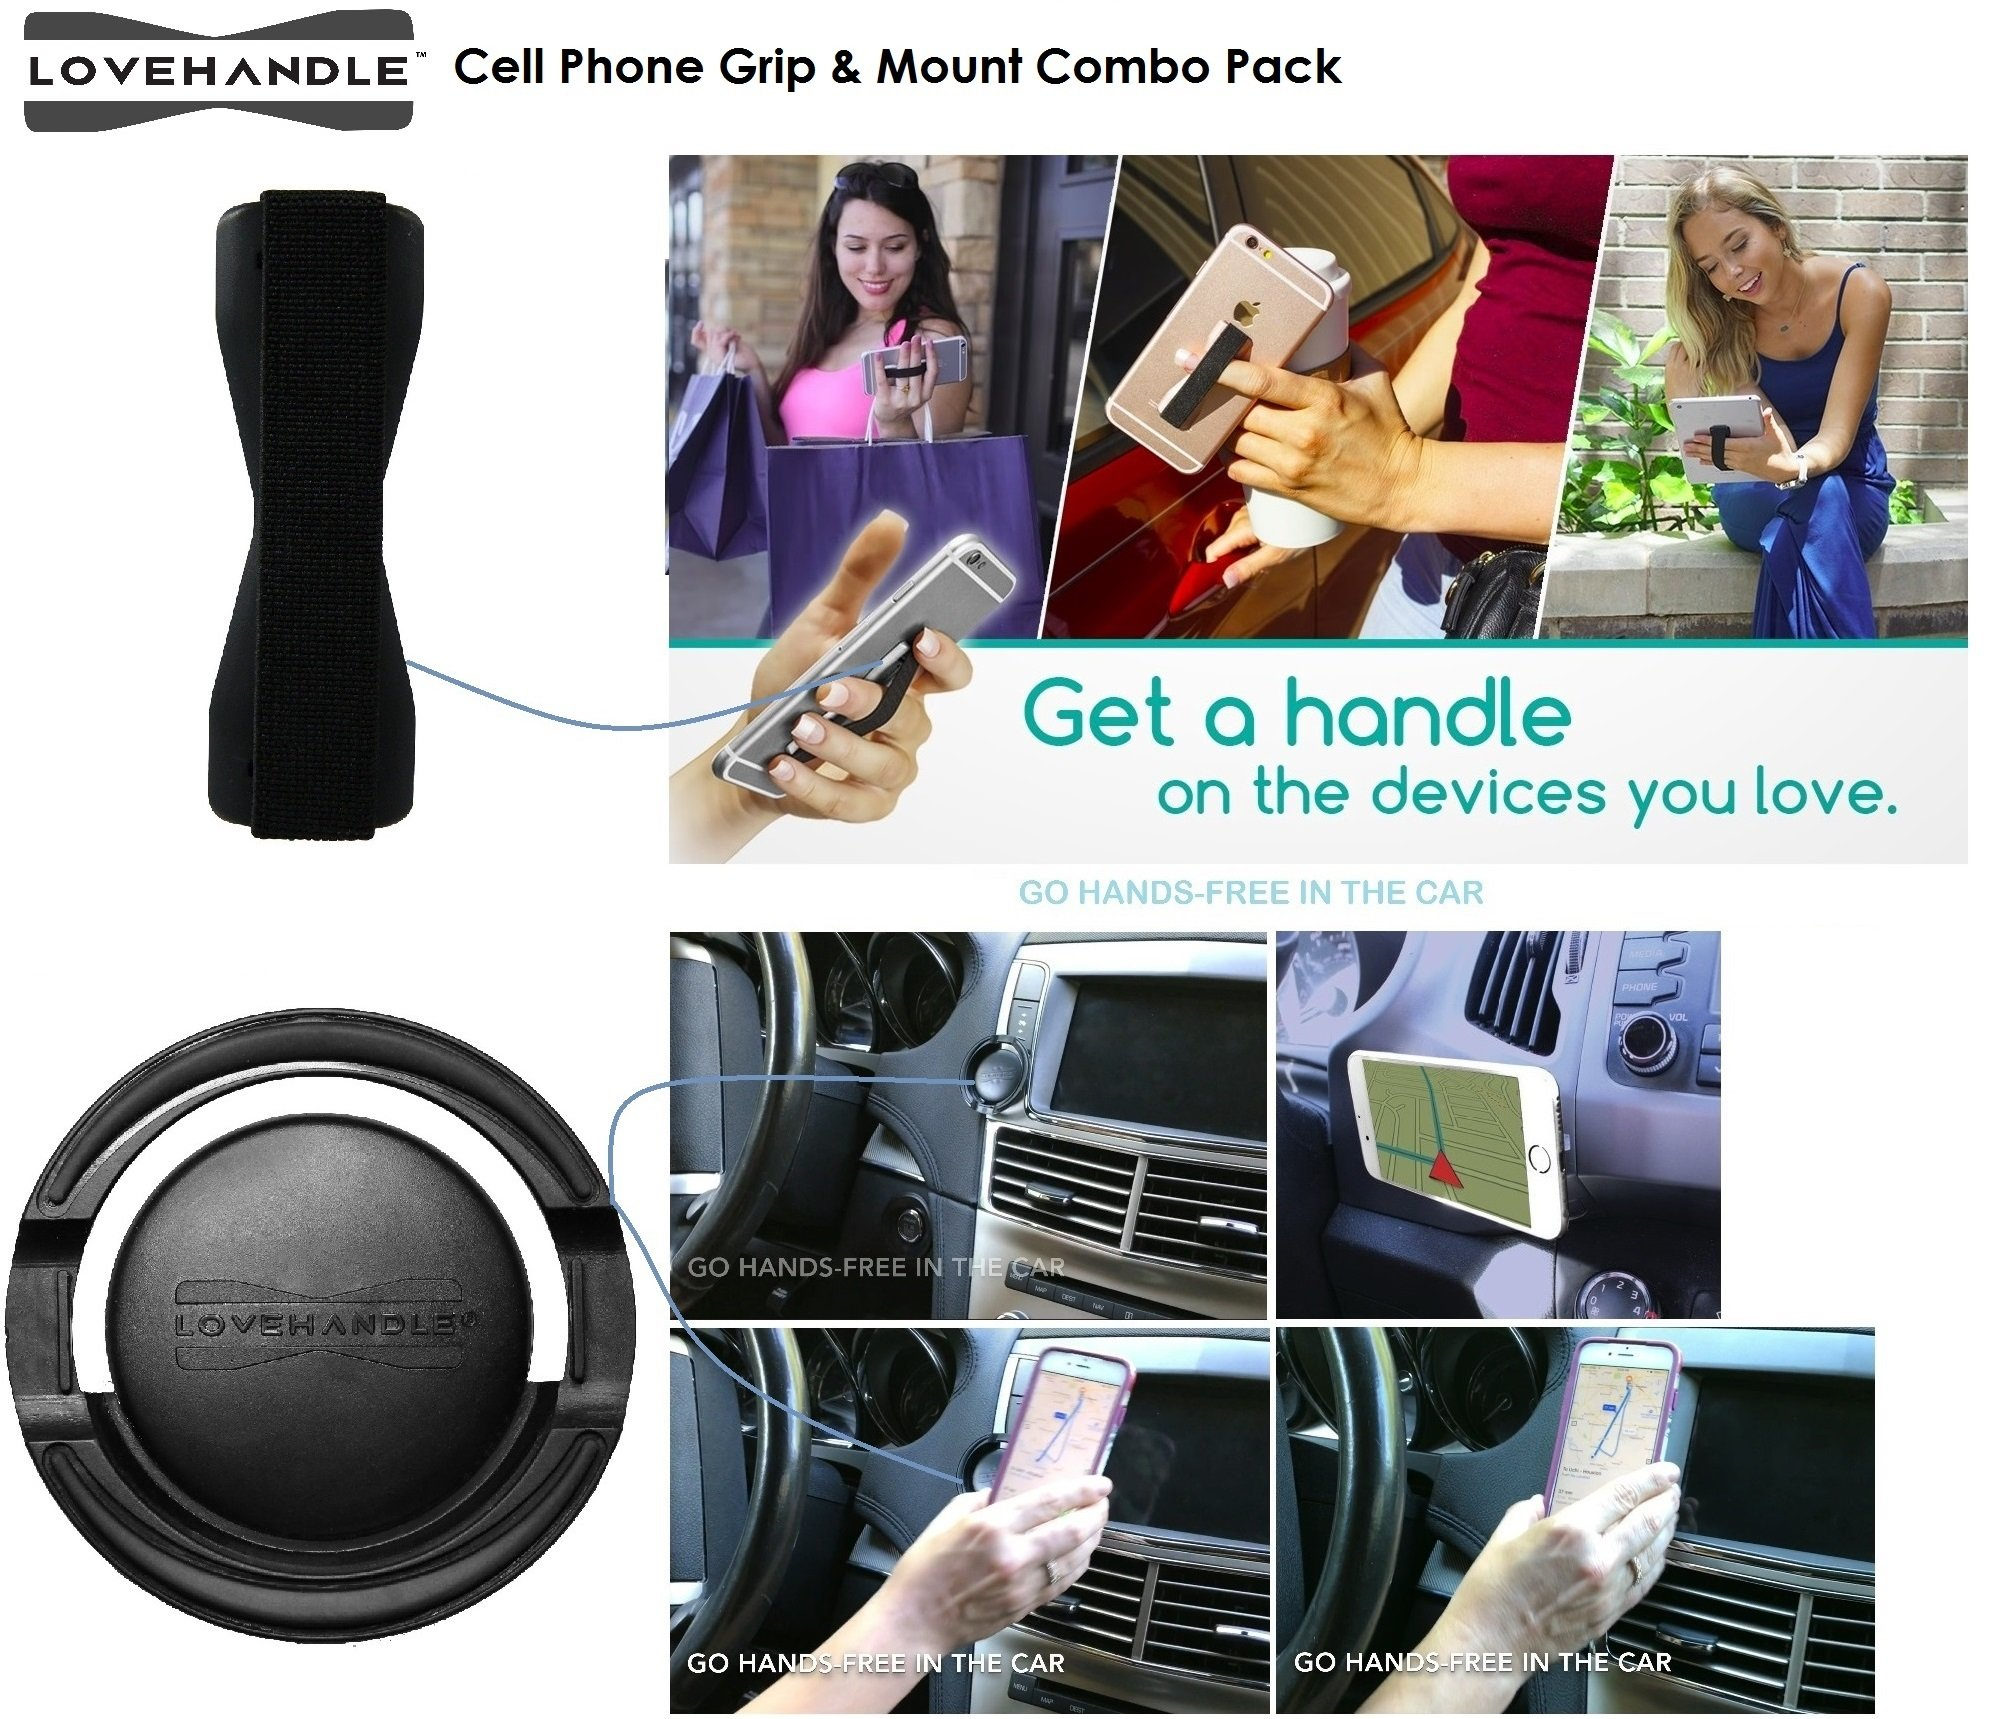 Cell Phone Holder and Grip - LoveHandle 360 Mount and Grip - Car Mount for Smartphones and Mini Tablets with 360 Rotation Technology - Combo Pack (Black Grip and Mount)